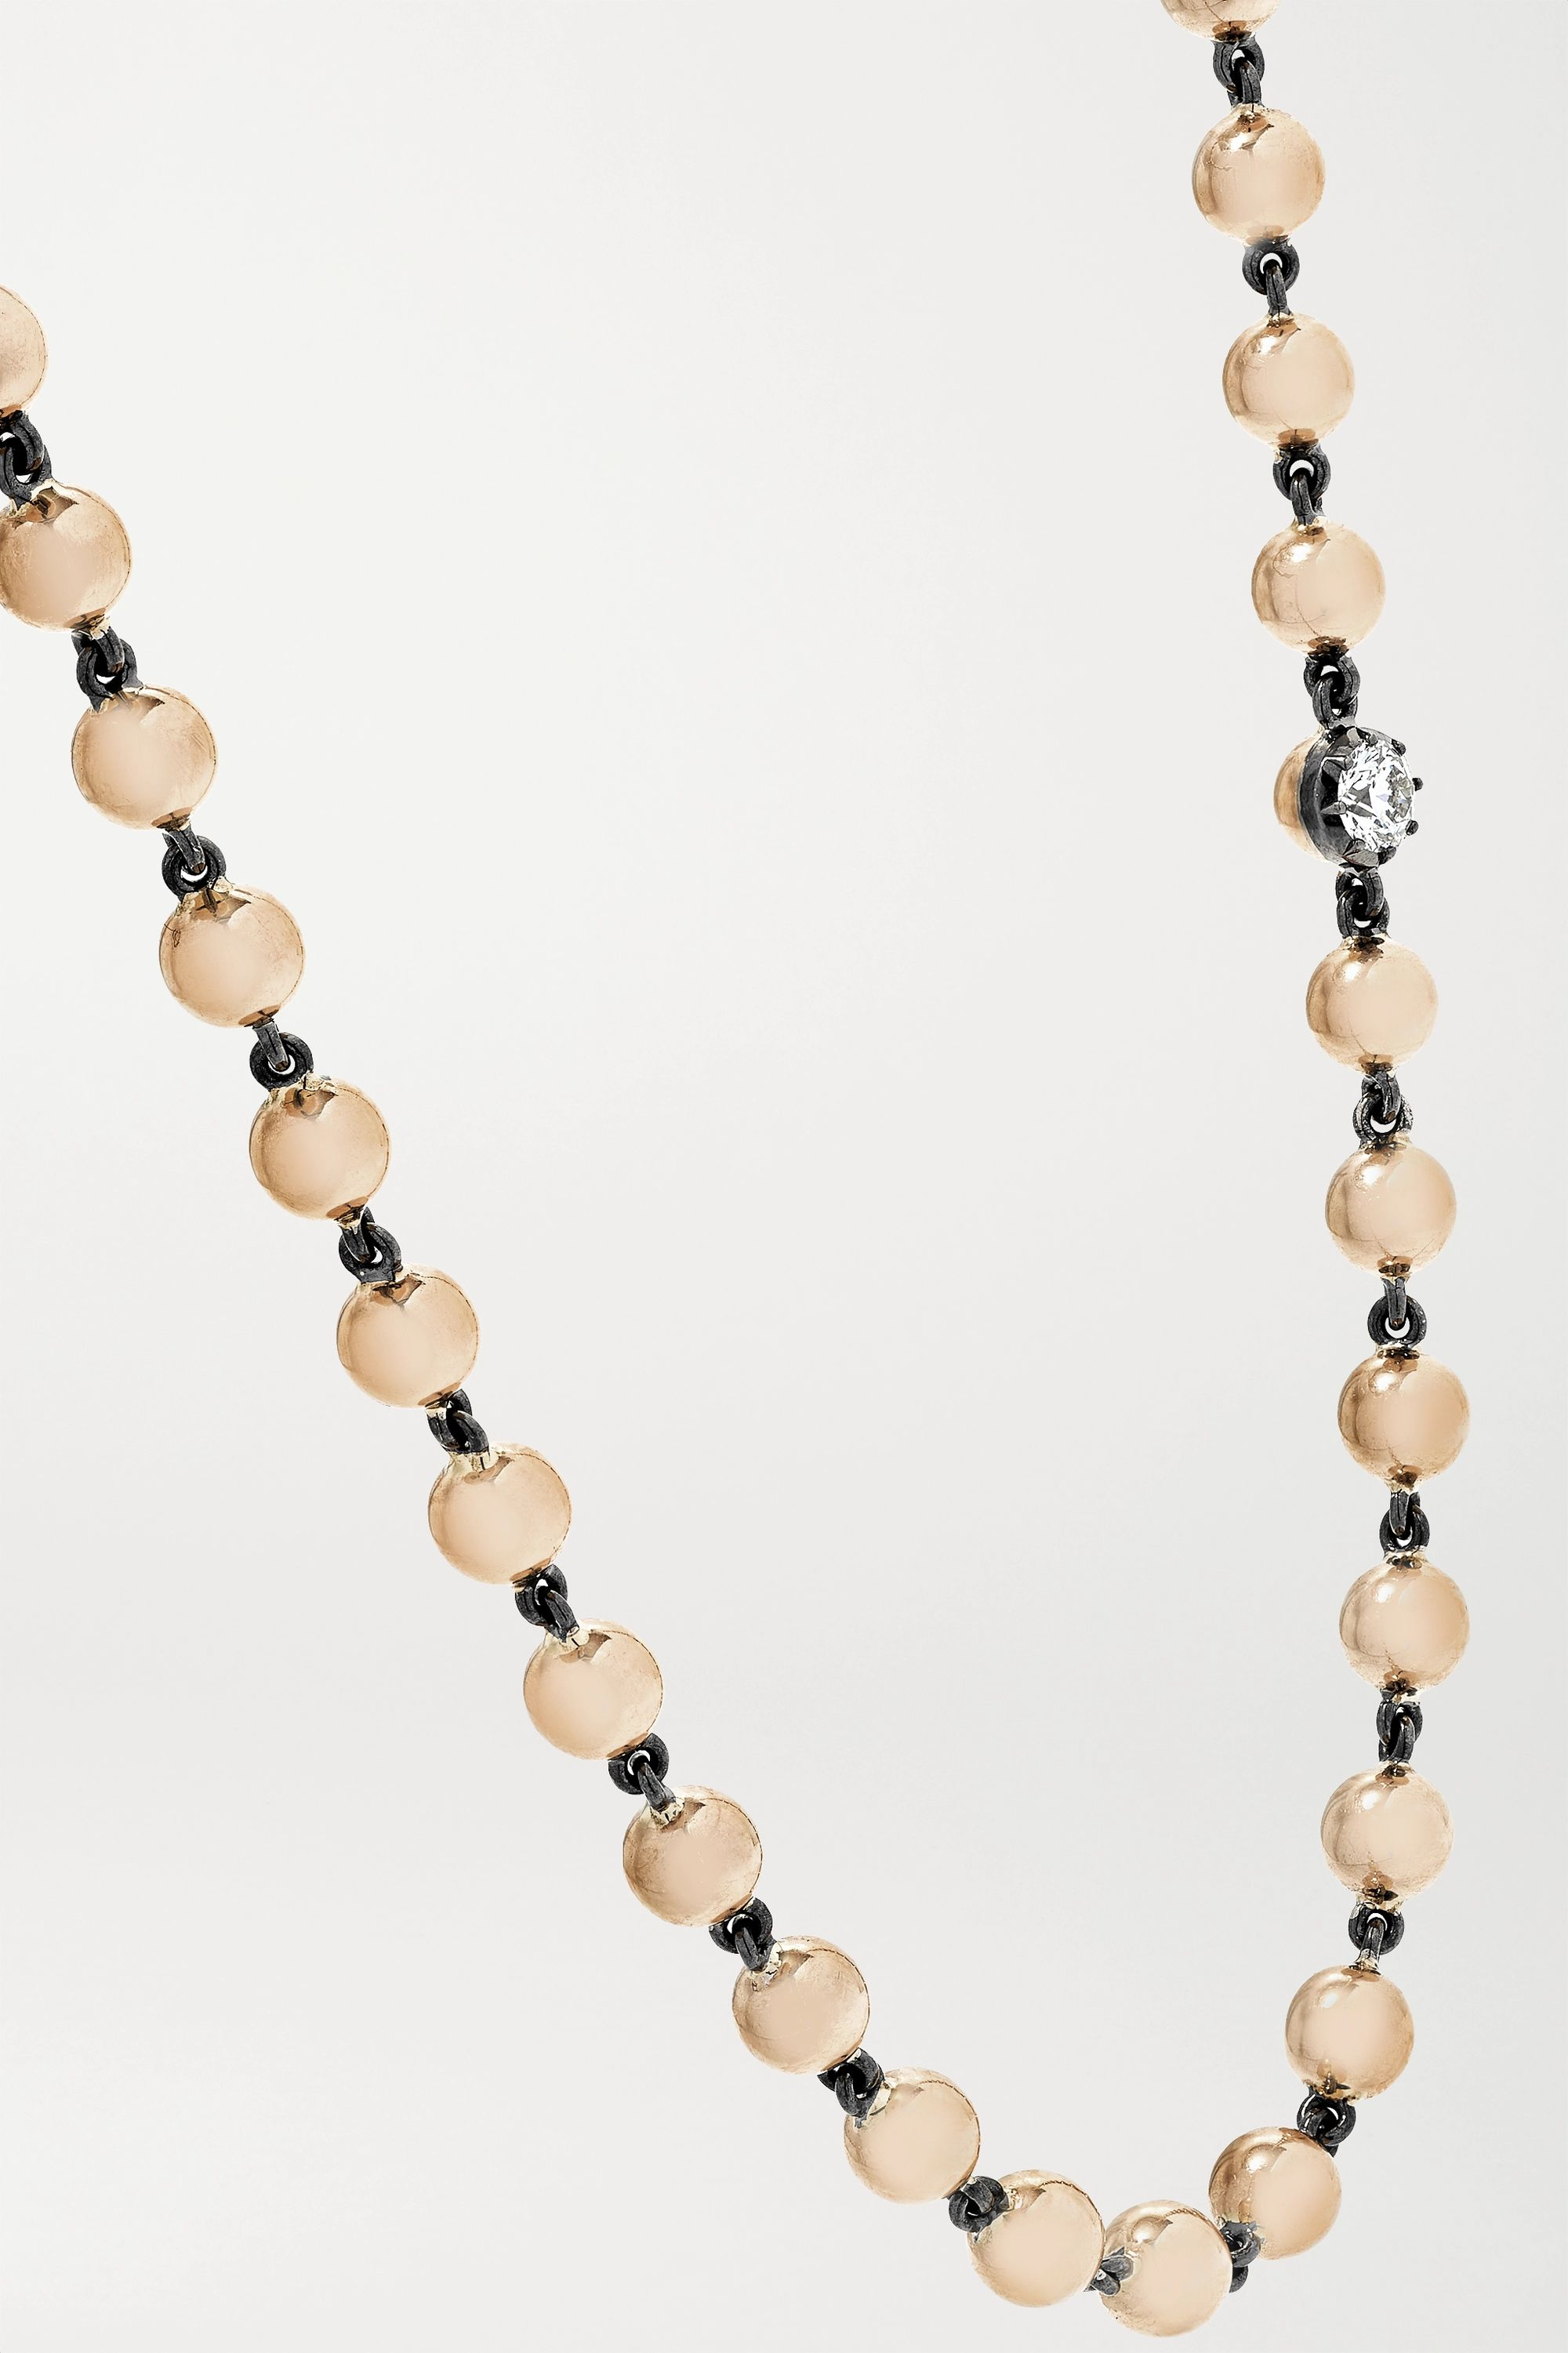 Jessica McCormack Ball n Chain 18-karat rose gold diamond necklace